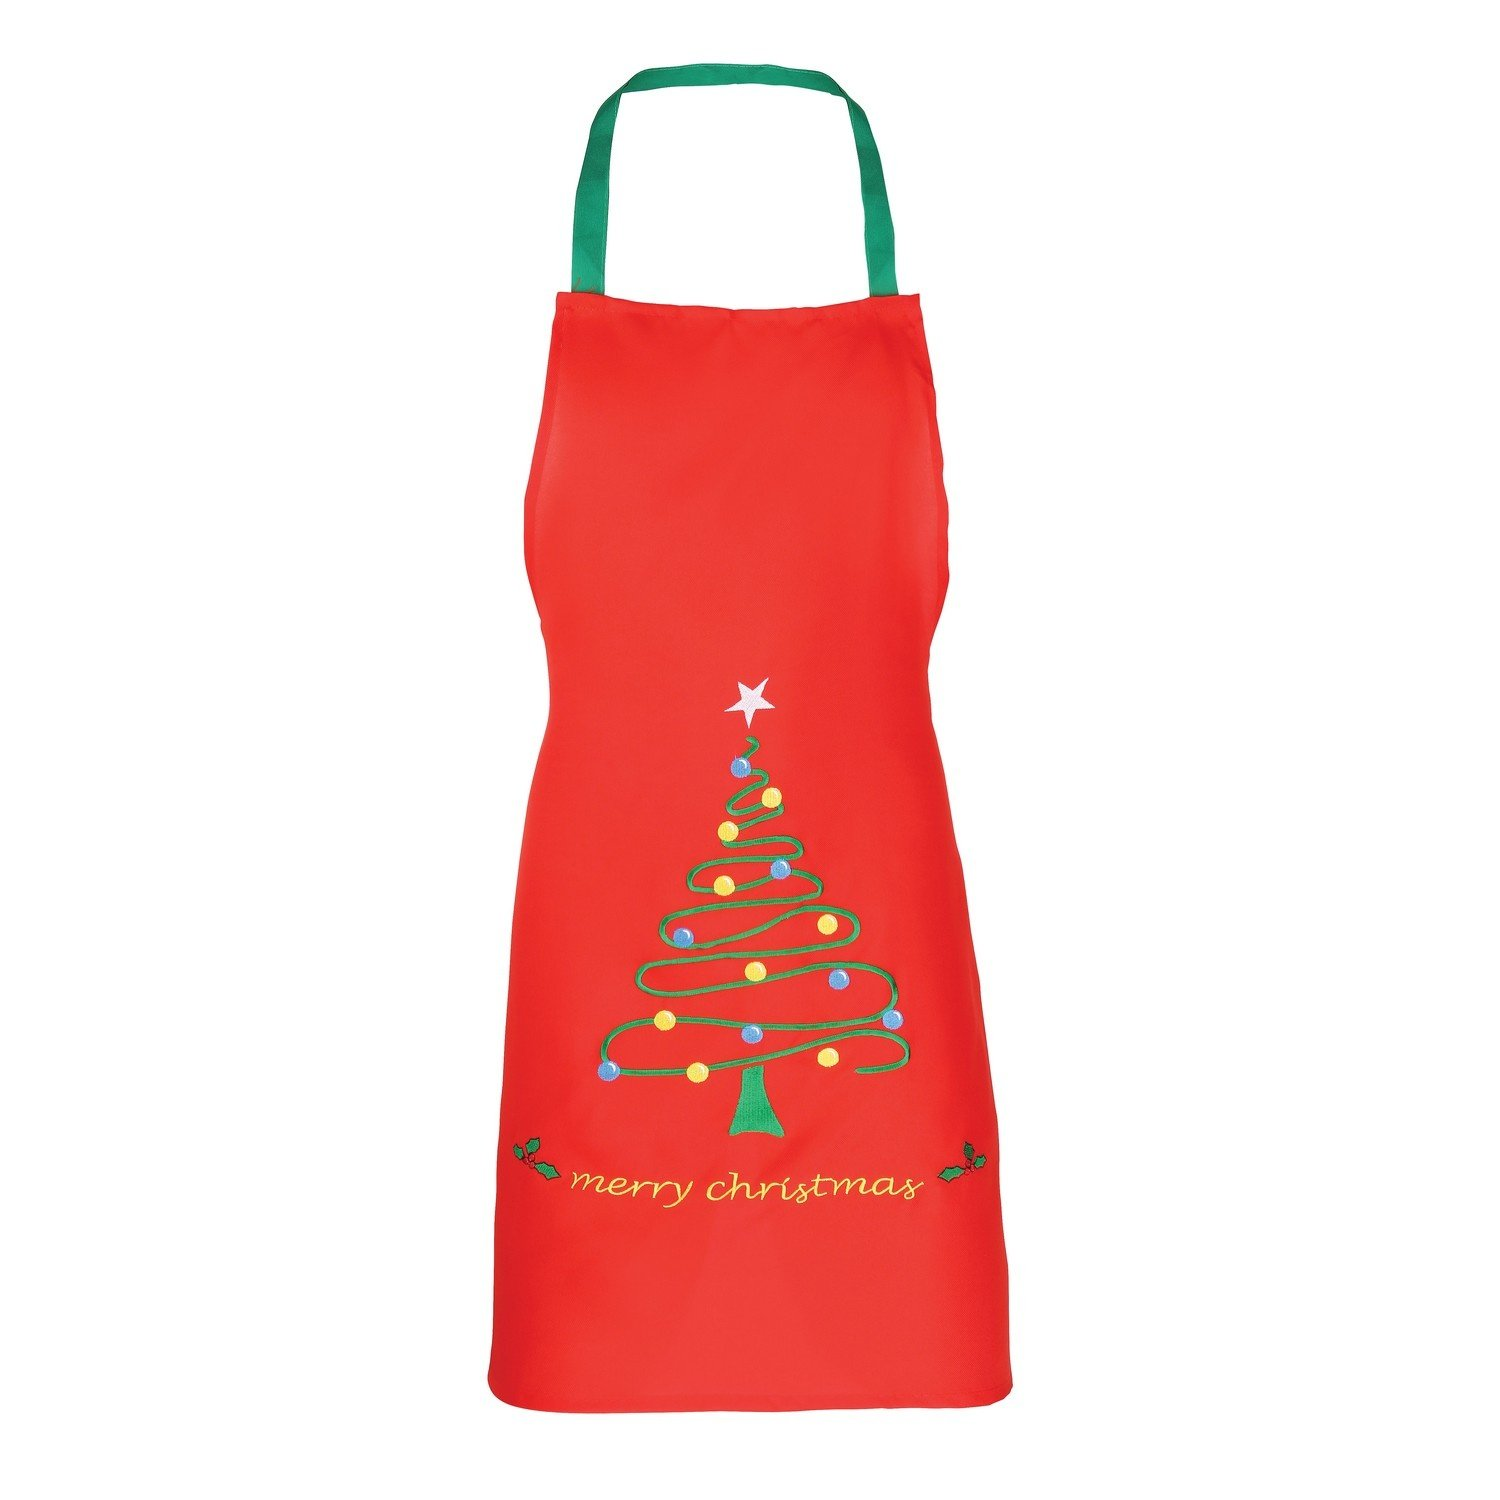 Christmas Shop Unisex Christmas Apron (2 Designs) (One Size) (Green Santa) UTRW3397_1